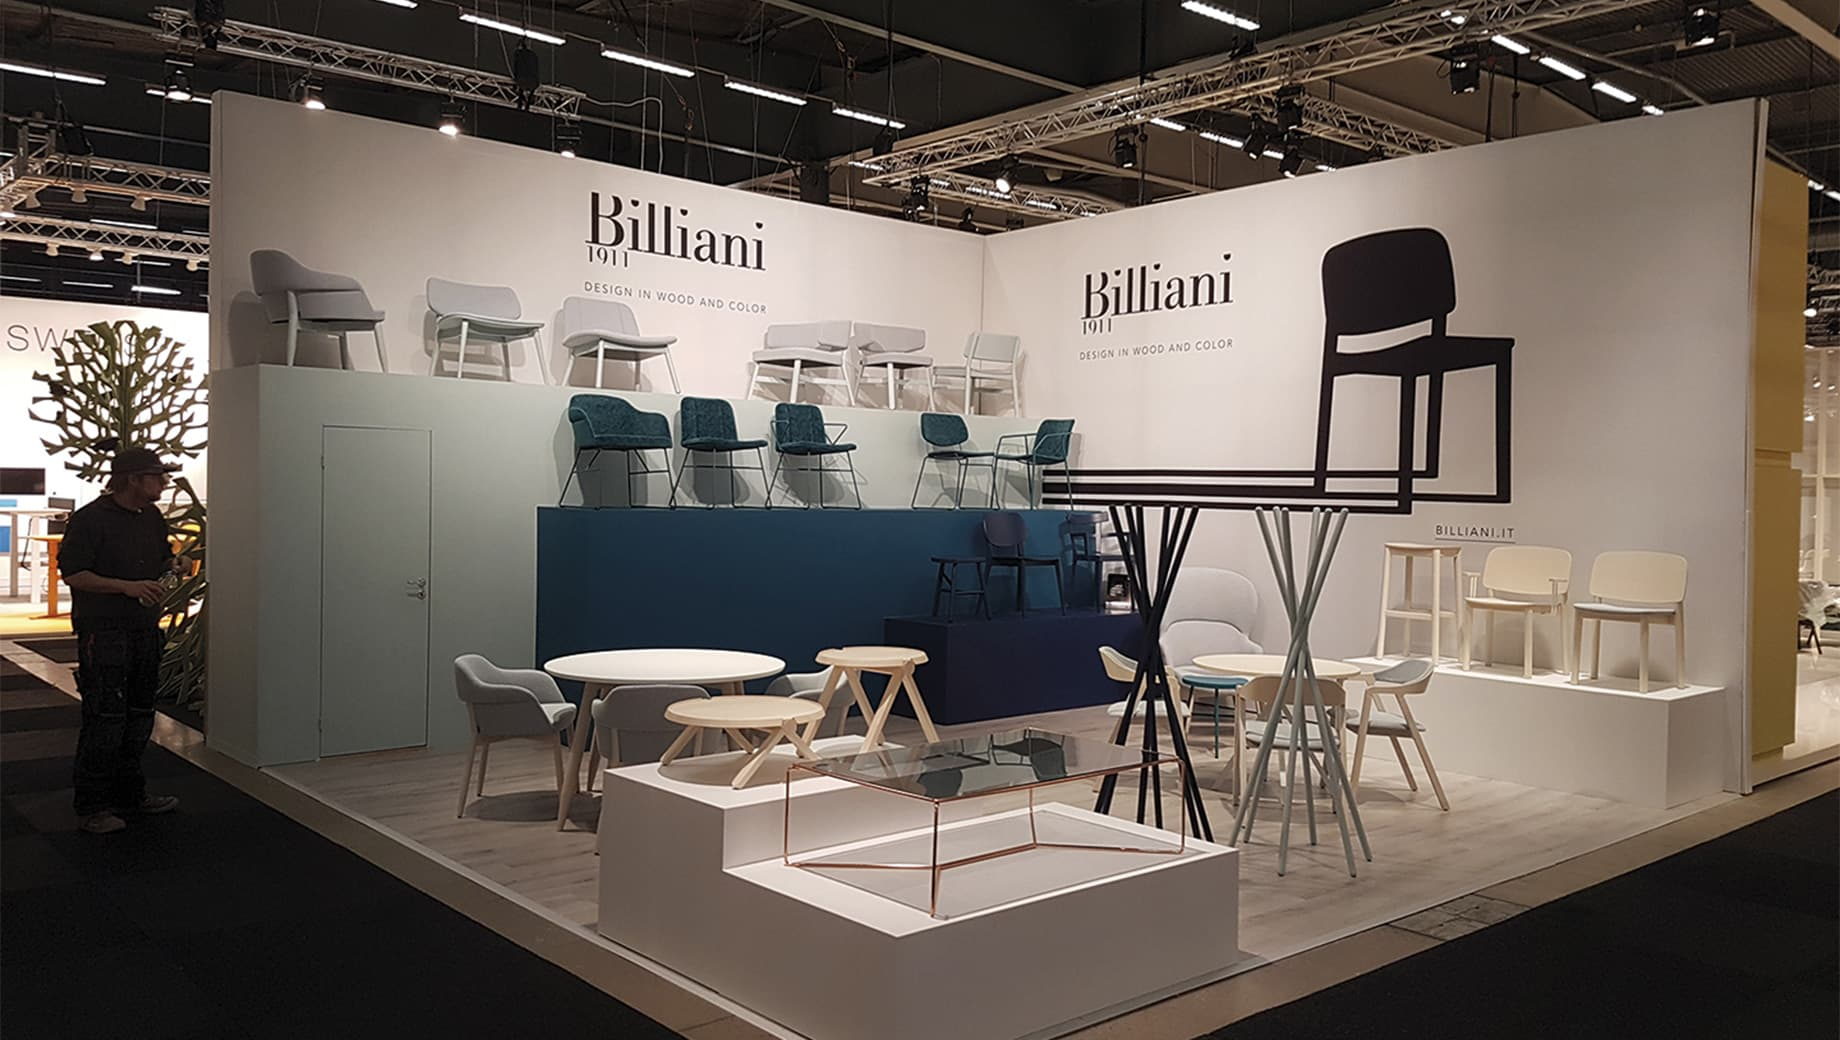 Billiani - Stockholm Furniture Fair